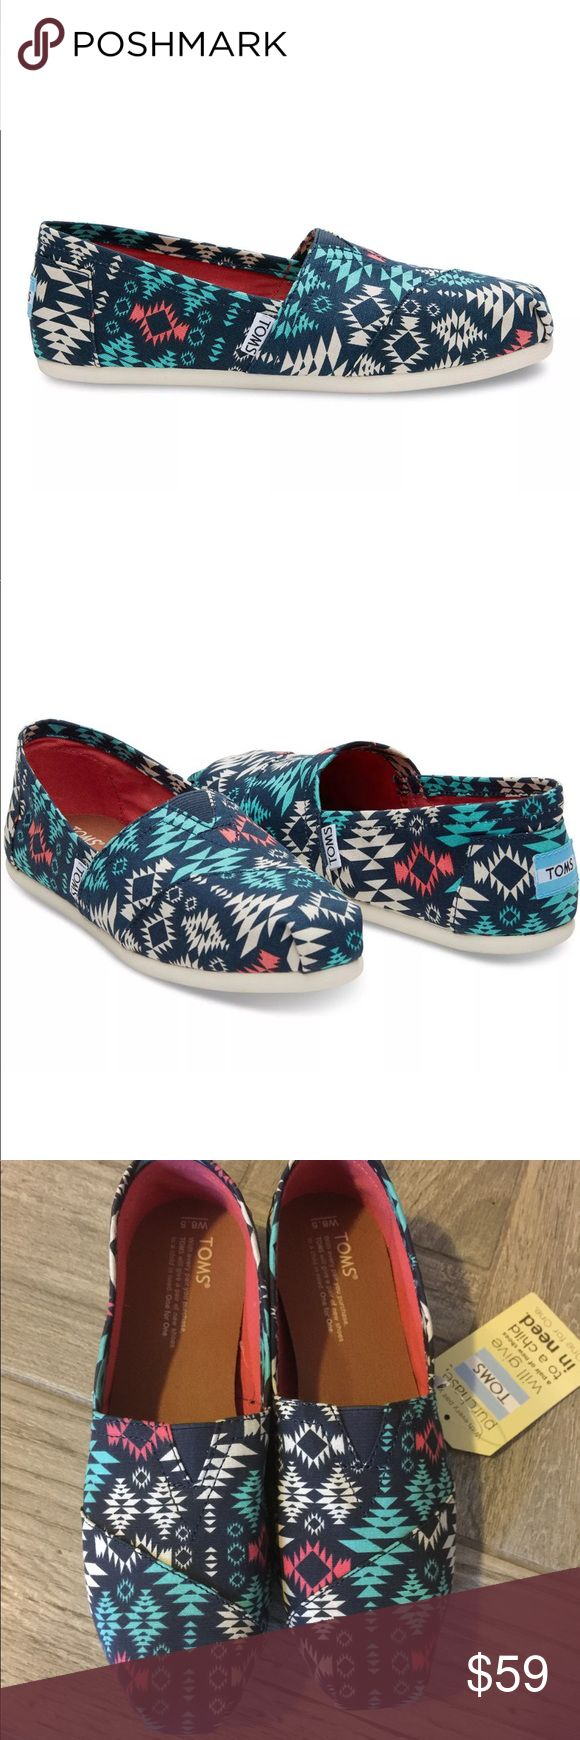 "New Toms classic blue blanket print canvas flats With more cushioning than ever, our Classic Alpargata is a must-have. Featuring a blanket print, the easy slip-on style goes with almost everything in your closet. ·    Blue blanket print canvas upper ·    Elastic ""V"" for easy fit ·    Molded footbed for increased cushioning ·    Rubber outsole with improved traction ·    Removable, antimicrobial sock liner    Condition:   New with box  Stock #:  AMR9-110 Toms Shoes Flats & Loafers"